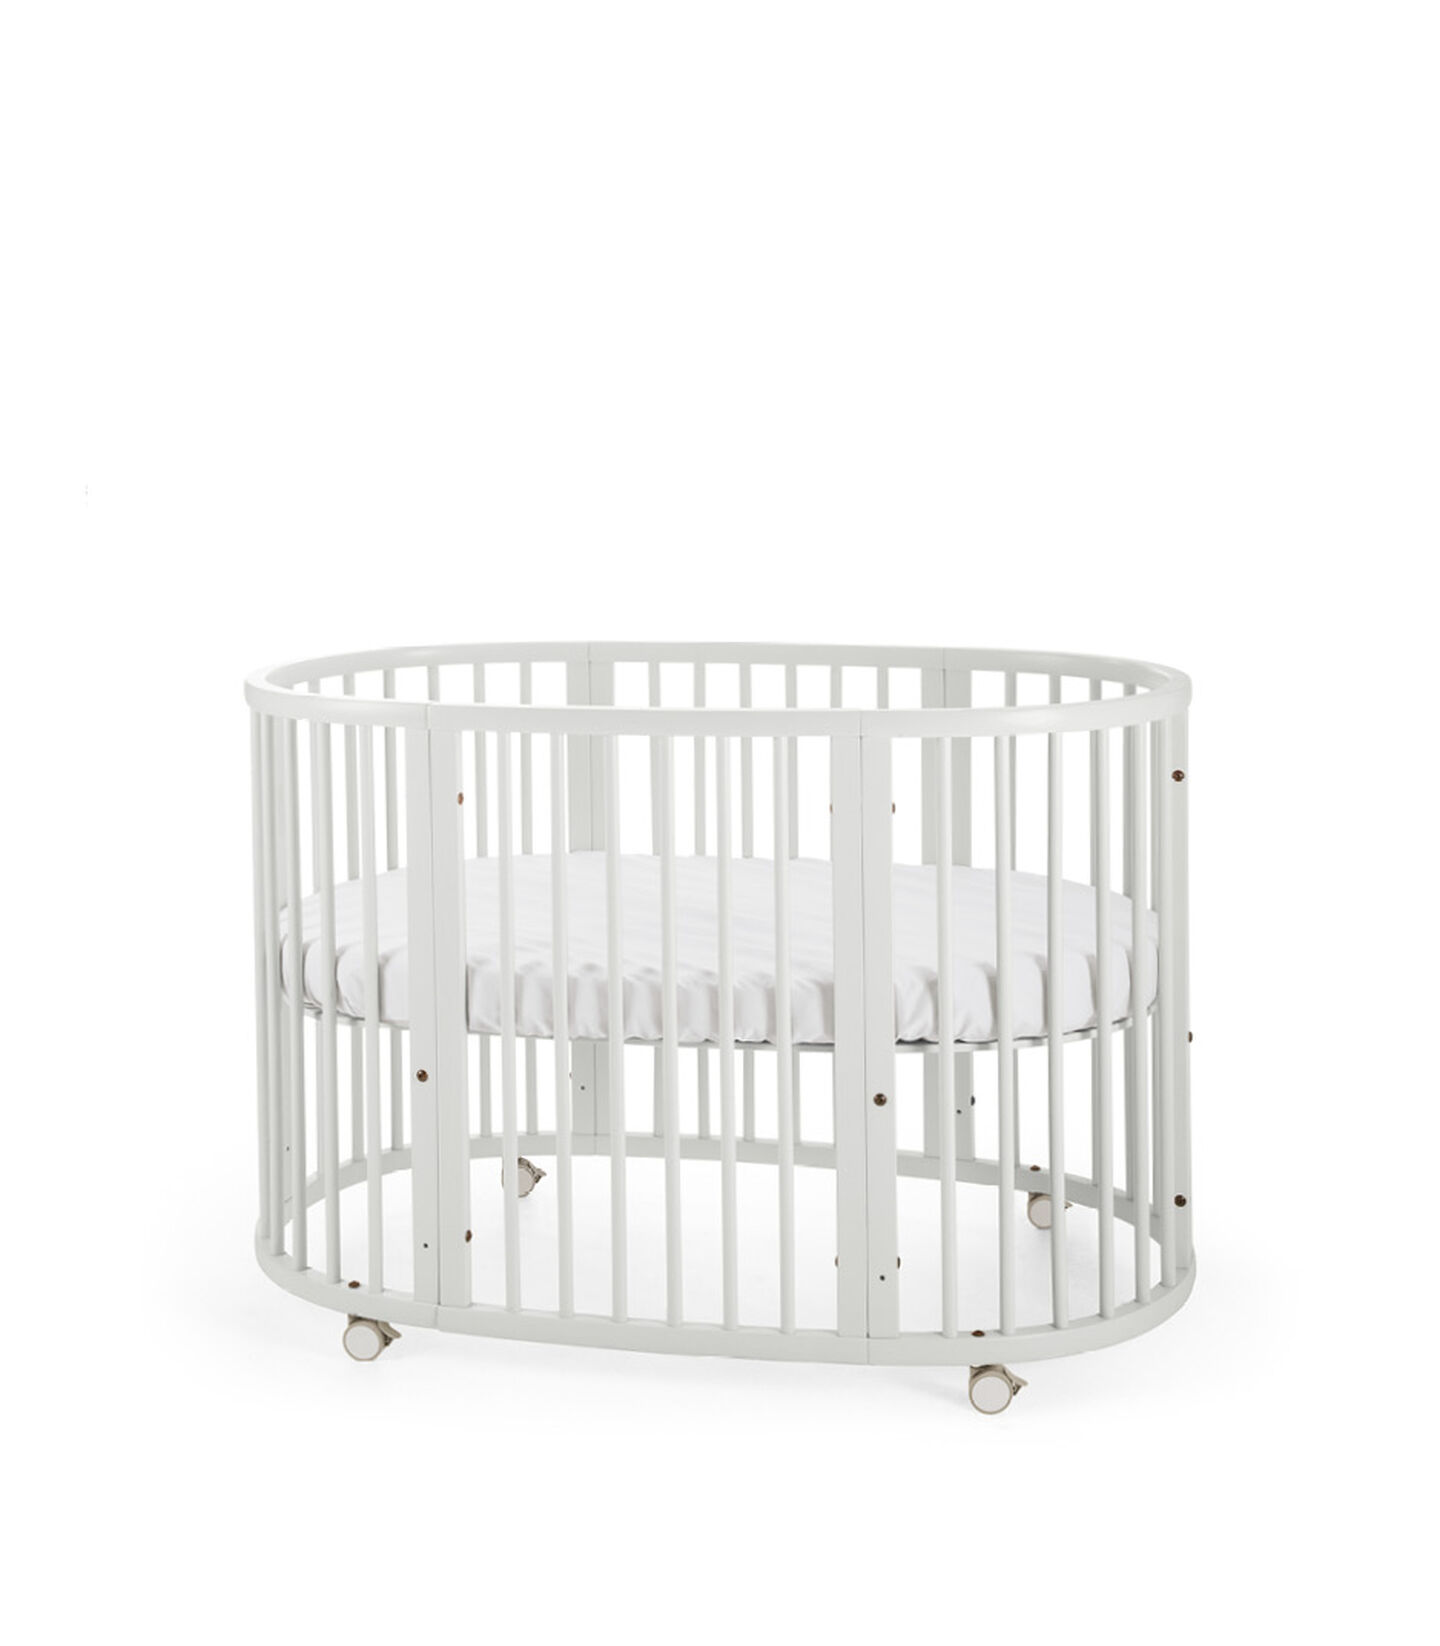 Stokke® Sleepi™ Bed. White. Mattress high. view 2